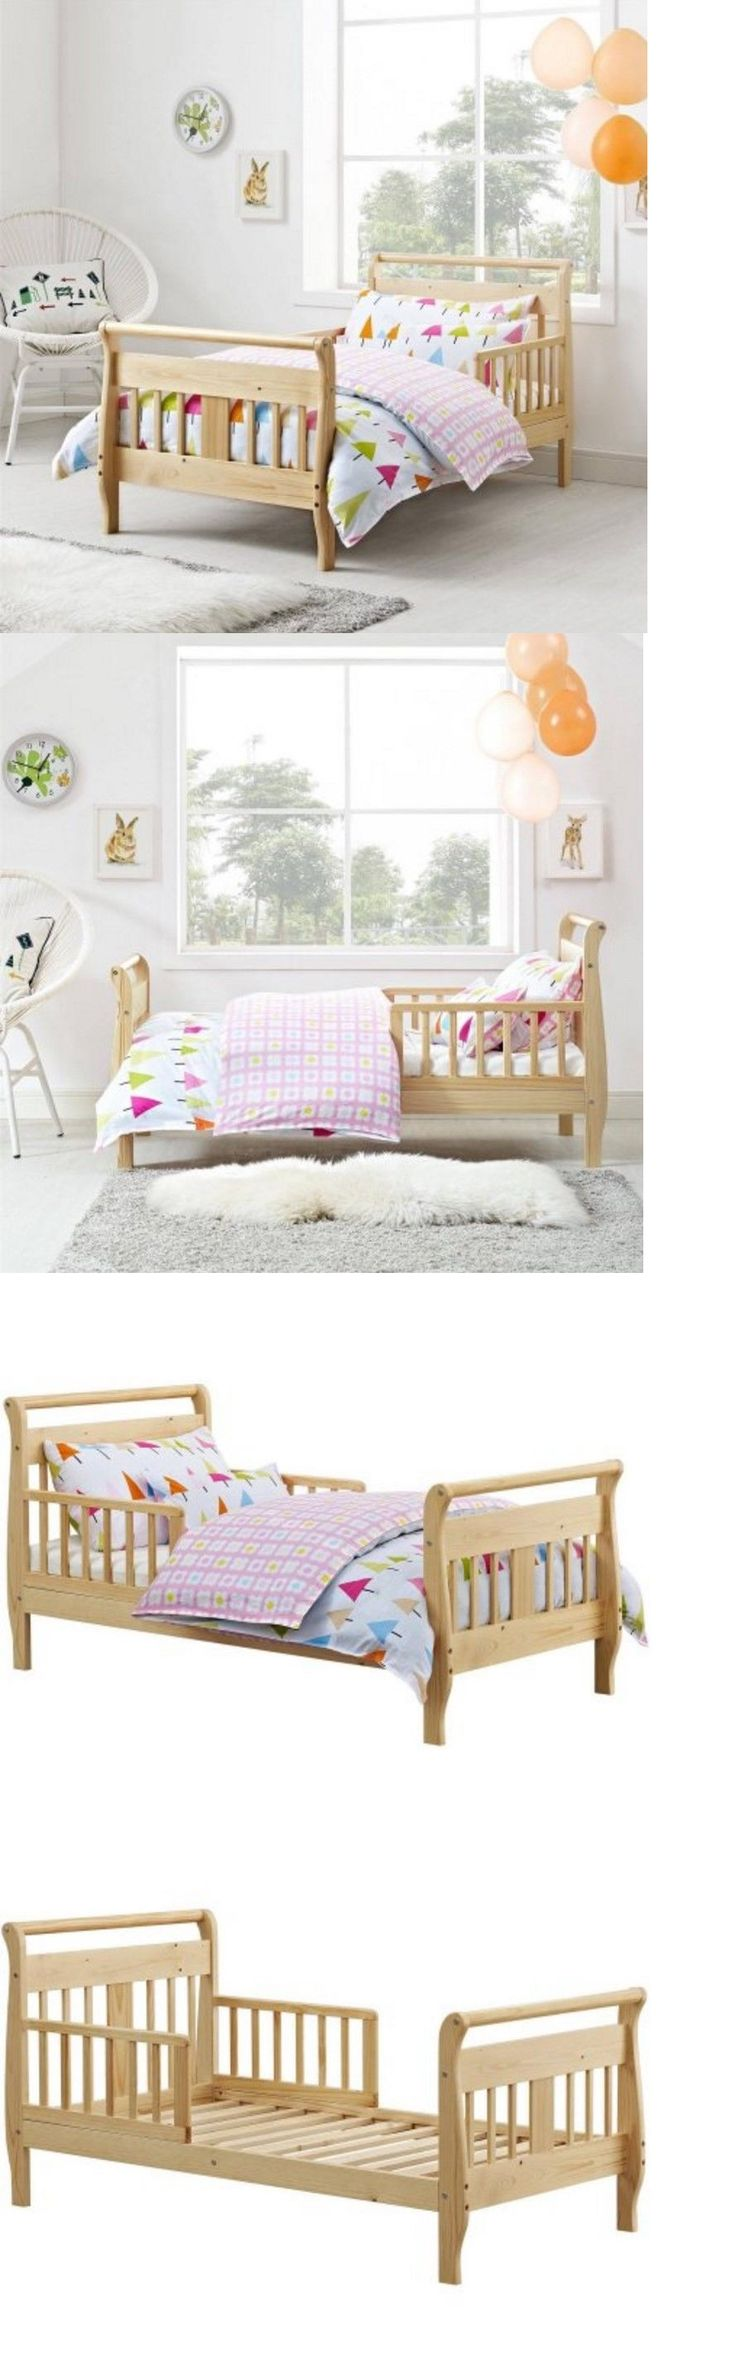 Natural Bedroom Furniture 17 Best Ideas About Natural Kids Bedroom Furniture On Pinterest